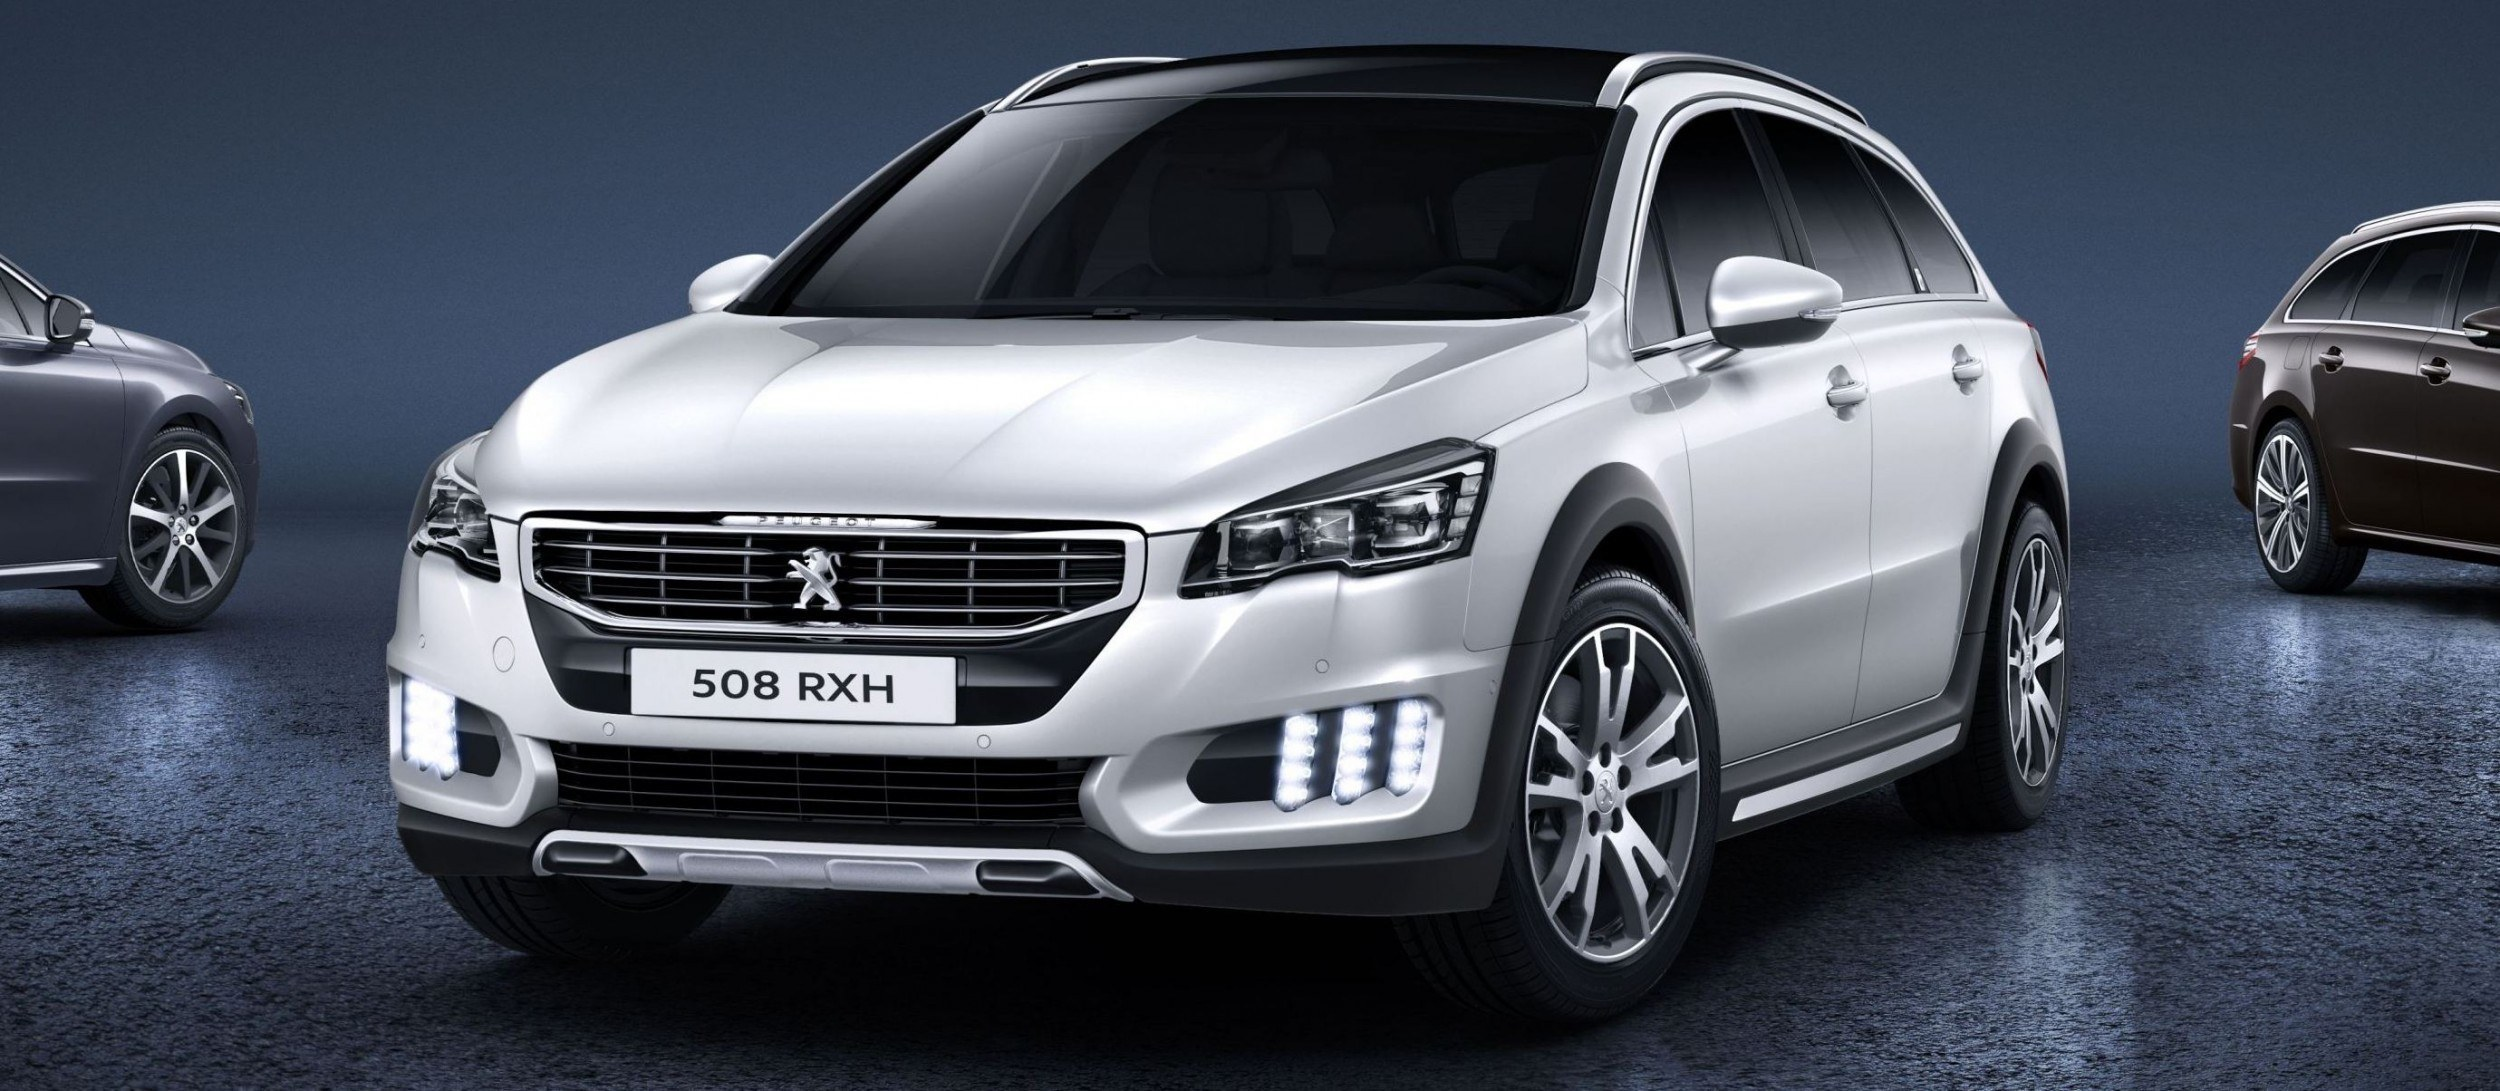 new peugeot 508 a mark of character autos post. Black Bedroom Furniture Sets. Home Design Ideas